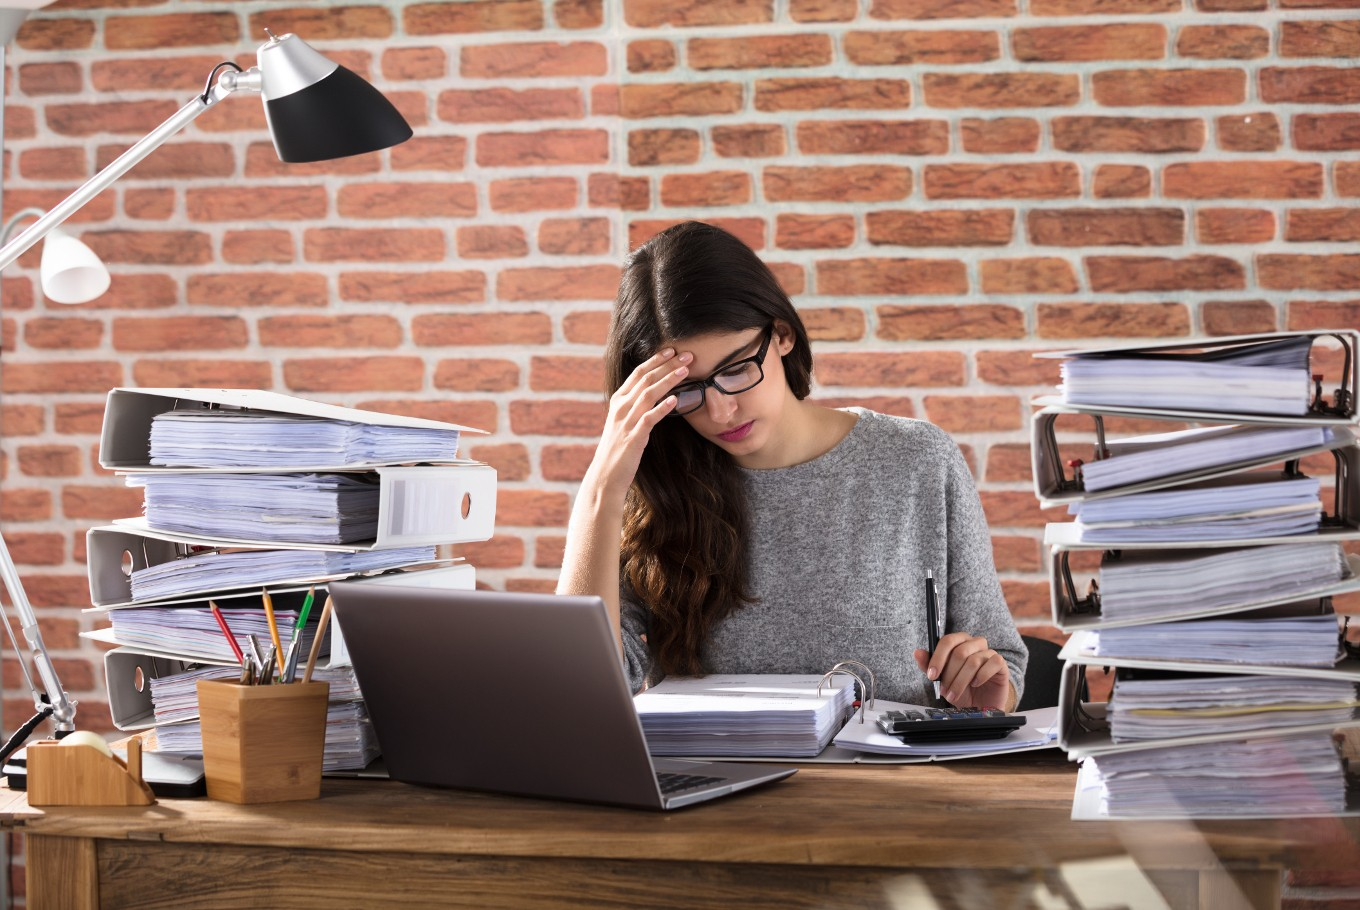 Giving yourself too much time to make a decision, or not setting up a schedule at all, can lead to overthinking. (Shutterstock/File)